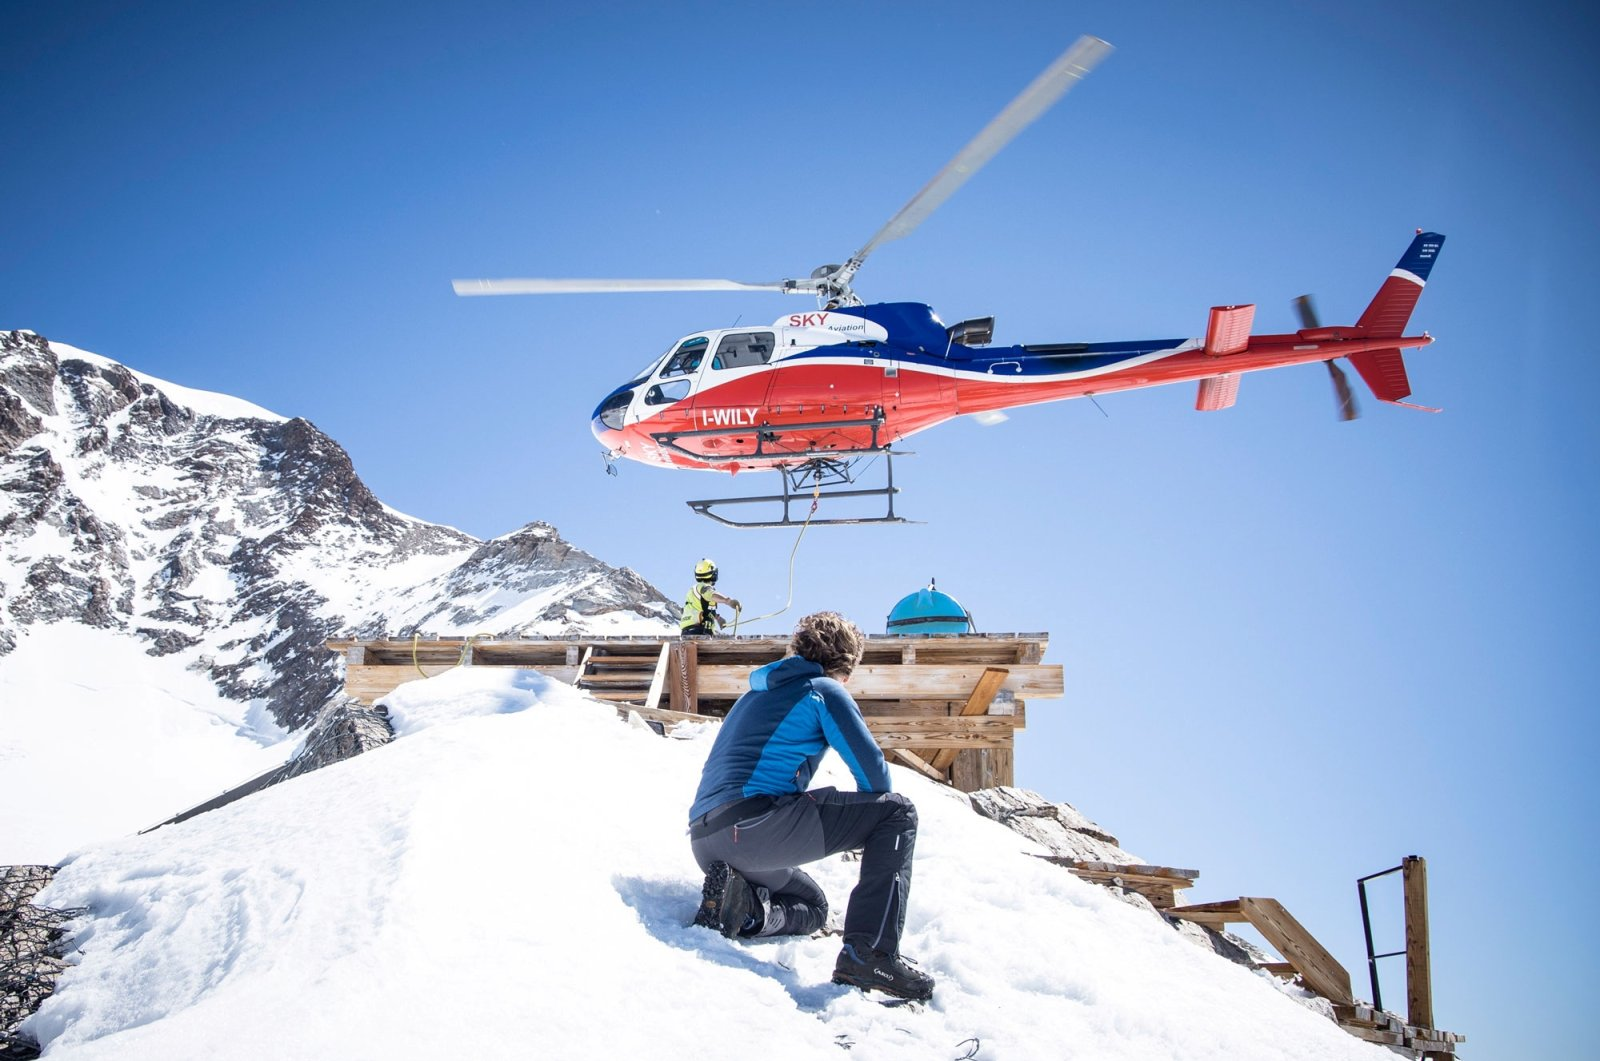 Scientists wait at 3,600 meters at a camp used to acclimatize on a mission to the Colle Gnifetti glacier on the summit of the Alps' Monte Rosa to harvest ice cores in June 2021. (Reuters Photo)